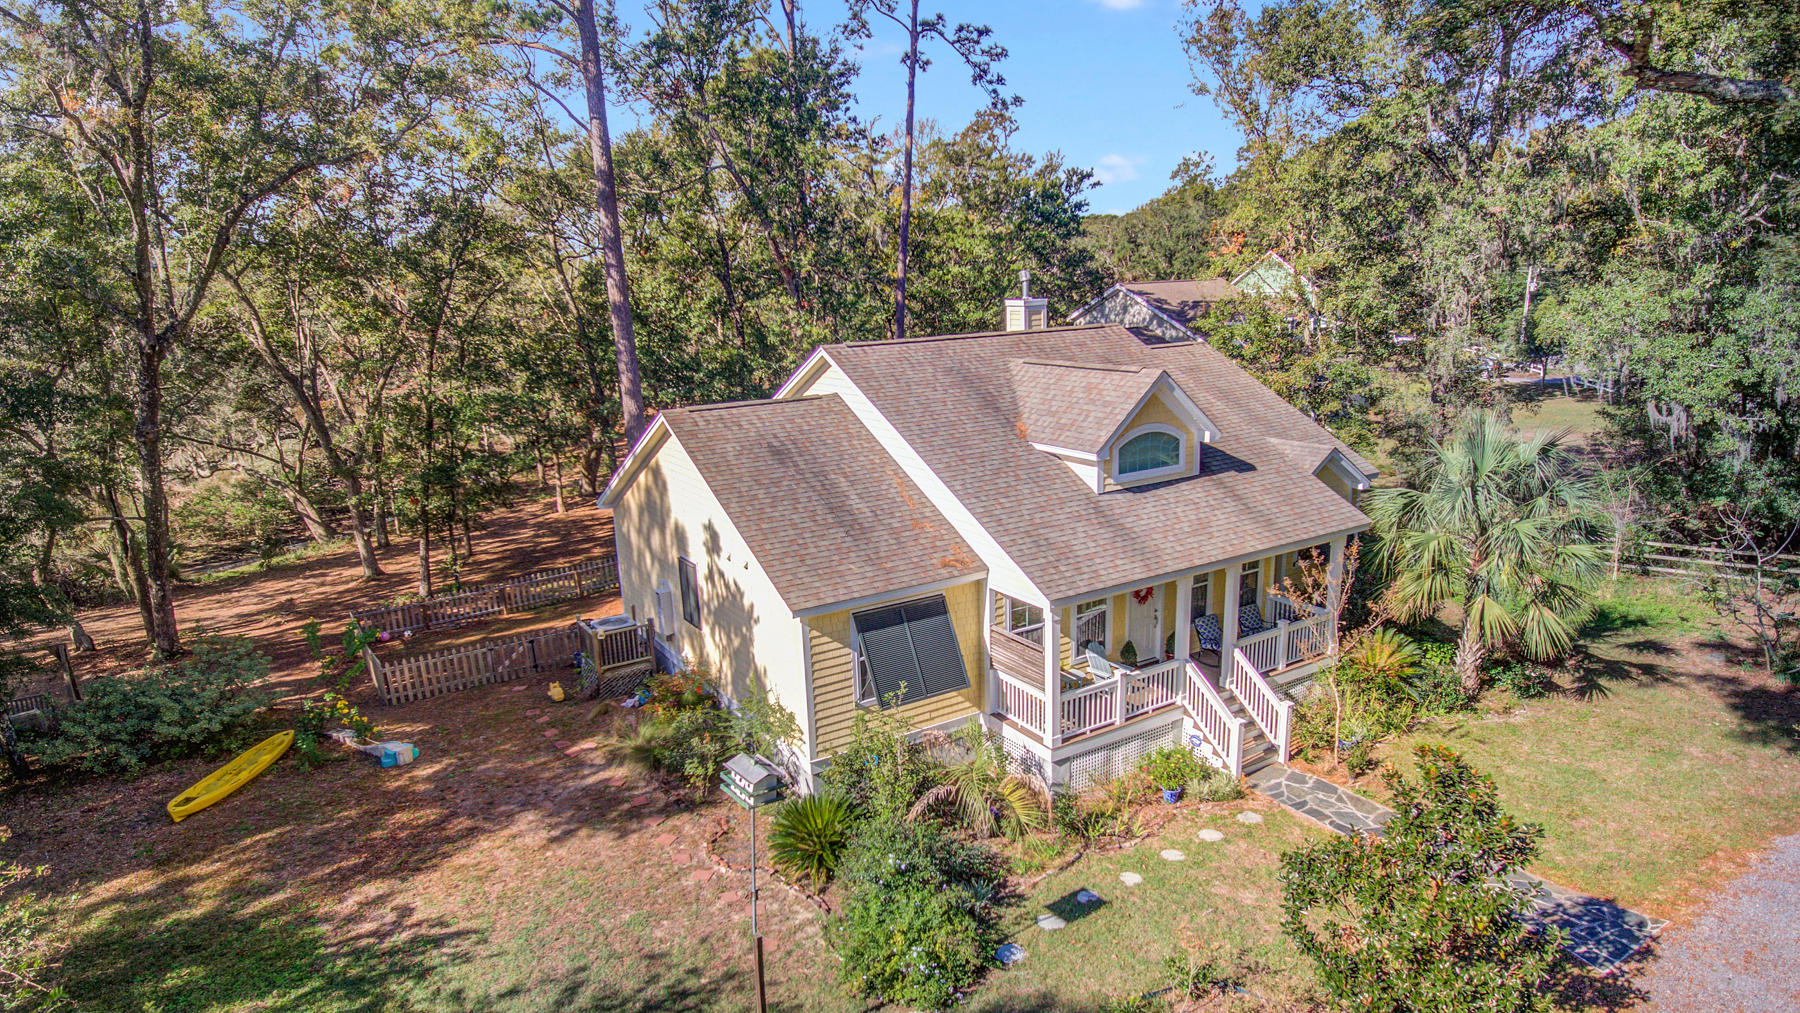 Hickory Hill Estates Homes For Sale - 3339 Hickory Hill, Johns Island, SC - 9